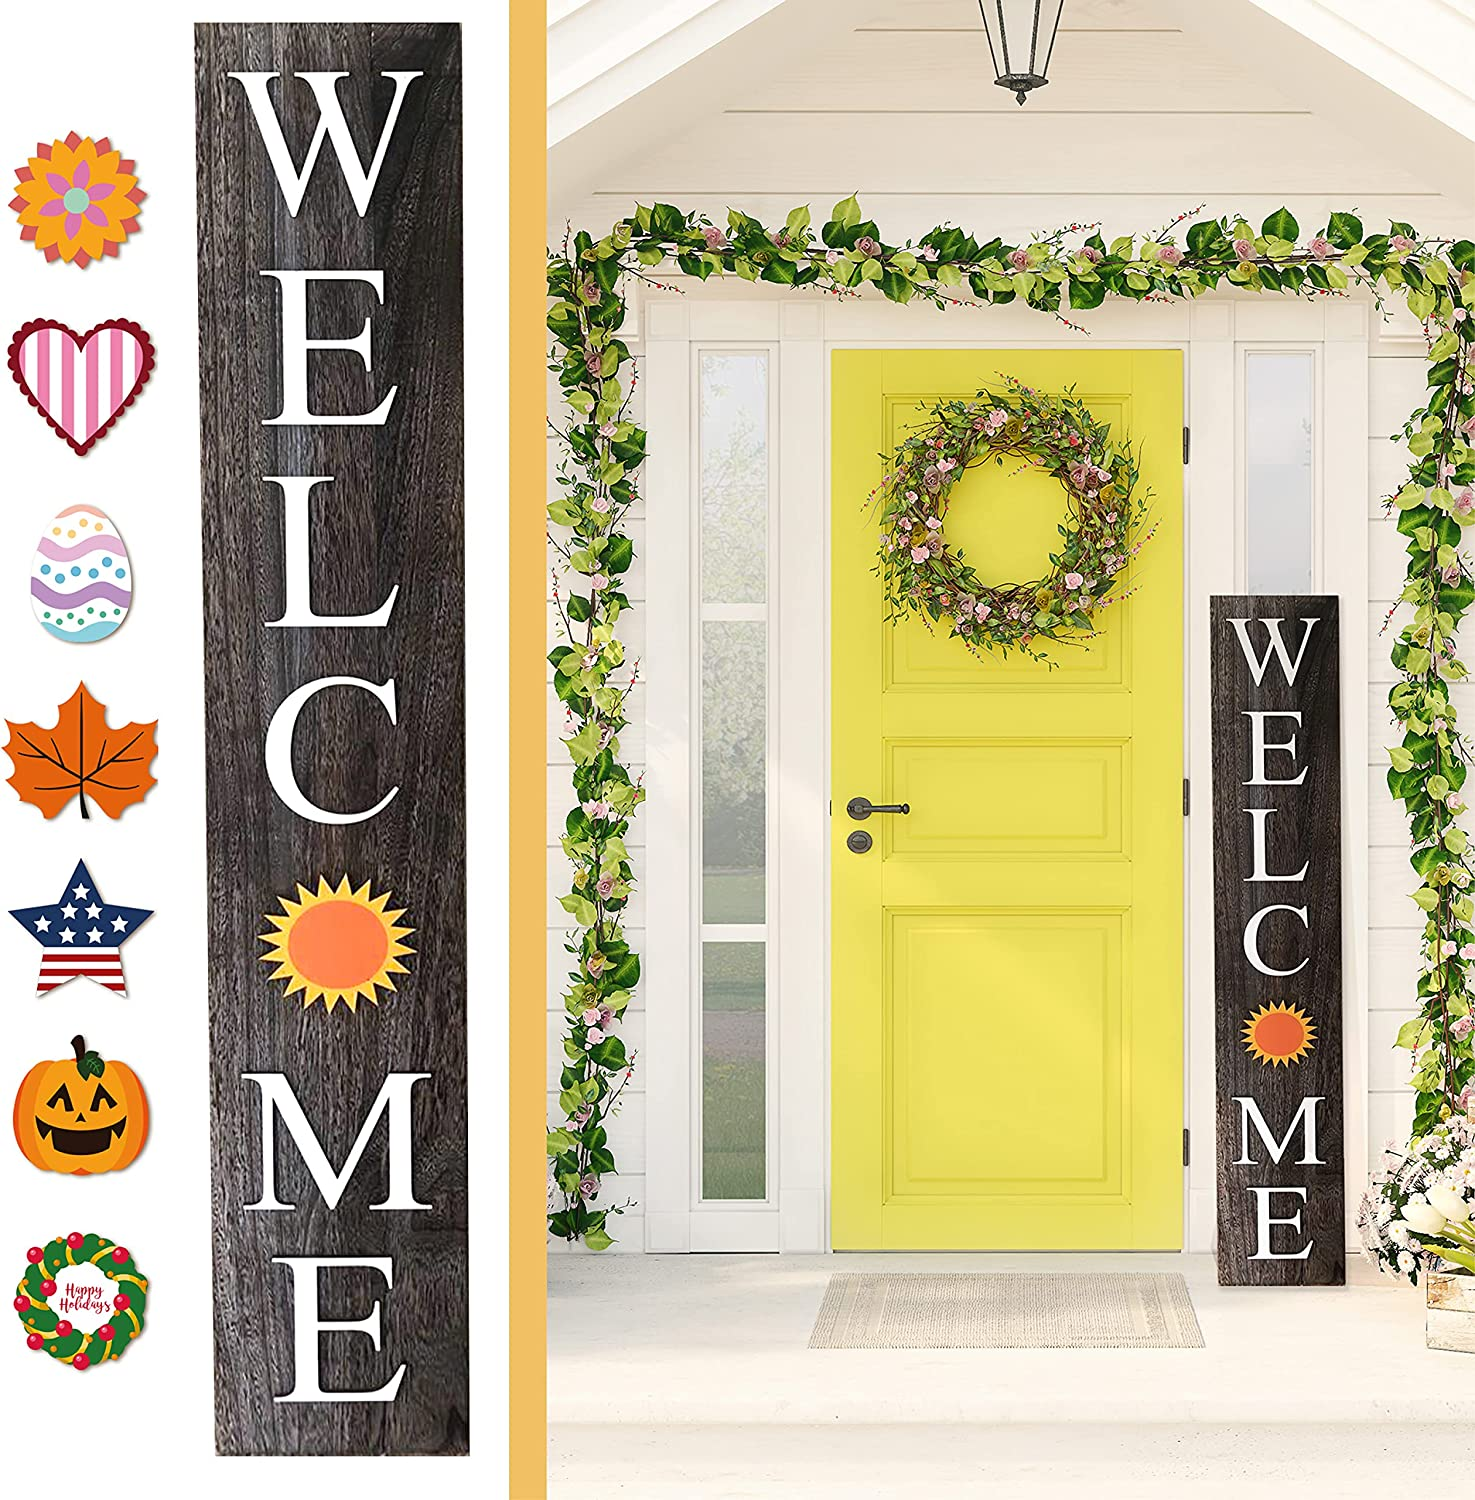 ALBEN Welcome Sign for Front Door Porch with Ornamental Tiles - 8 Interchangeable Seasonal Tiles, Celebrate Holidays and Seasons, Vertical Wooden Outdoor and Indoor Welcome Home Decor Sign (Gray)